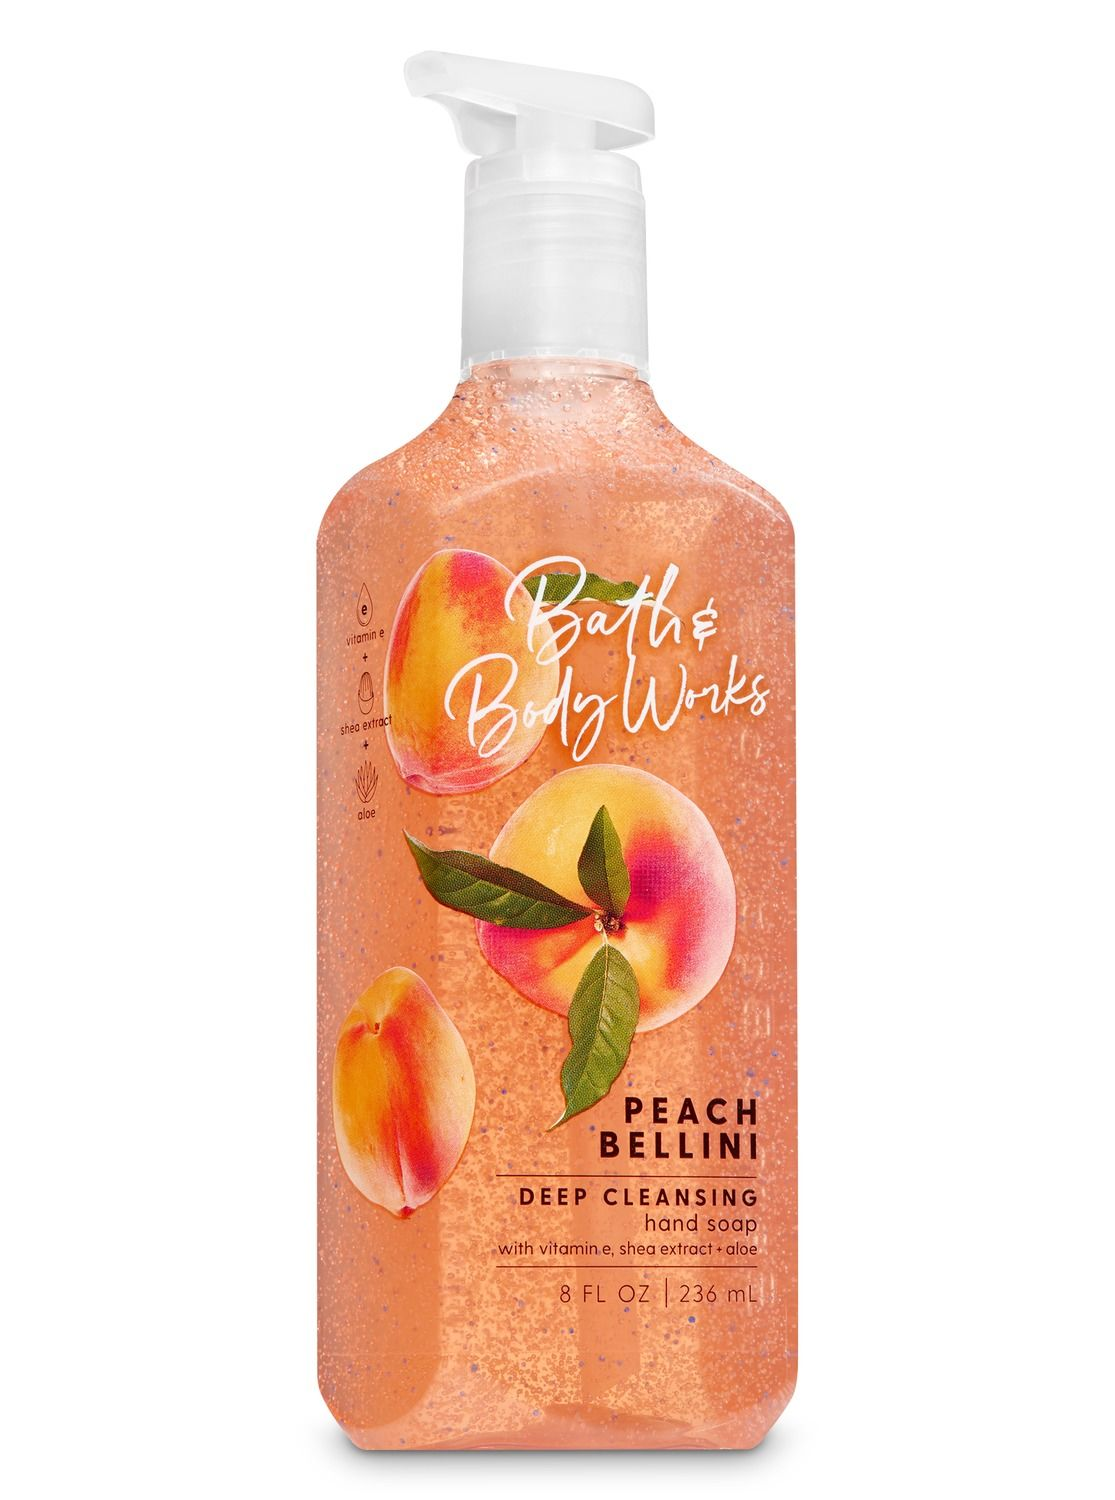 Peach Bellini Deep Cleansing Hand Soap Peach Bellini Soap Bath